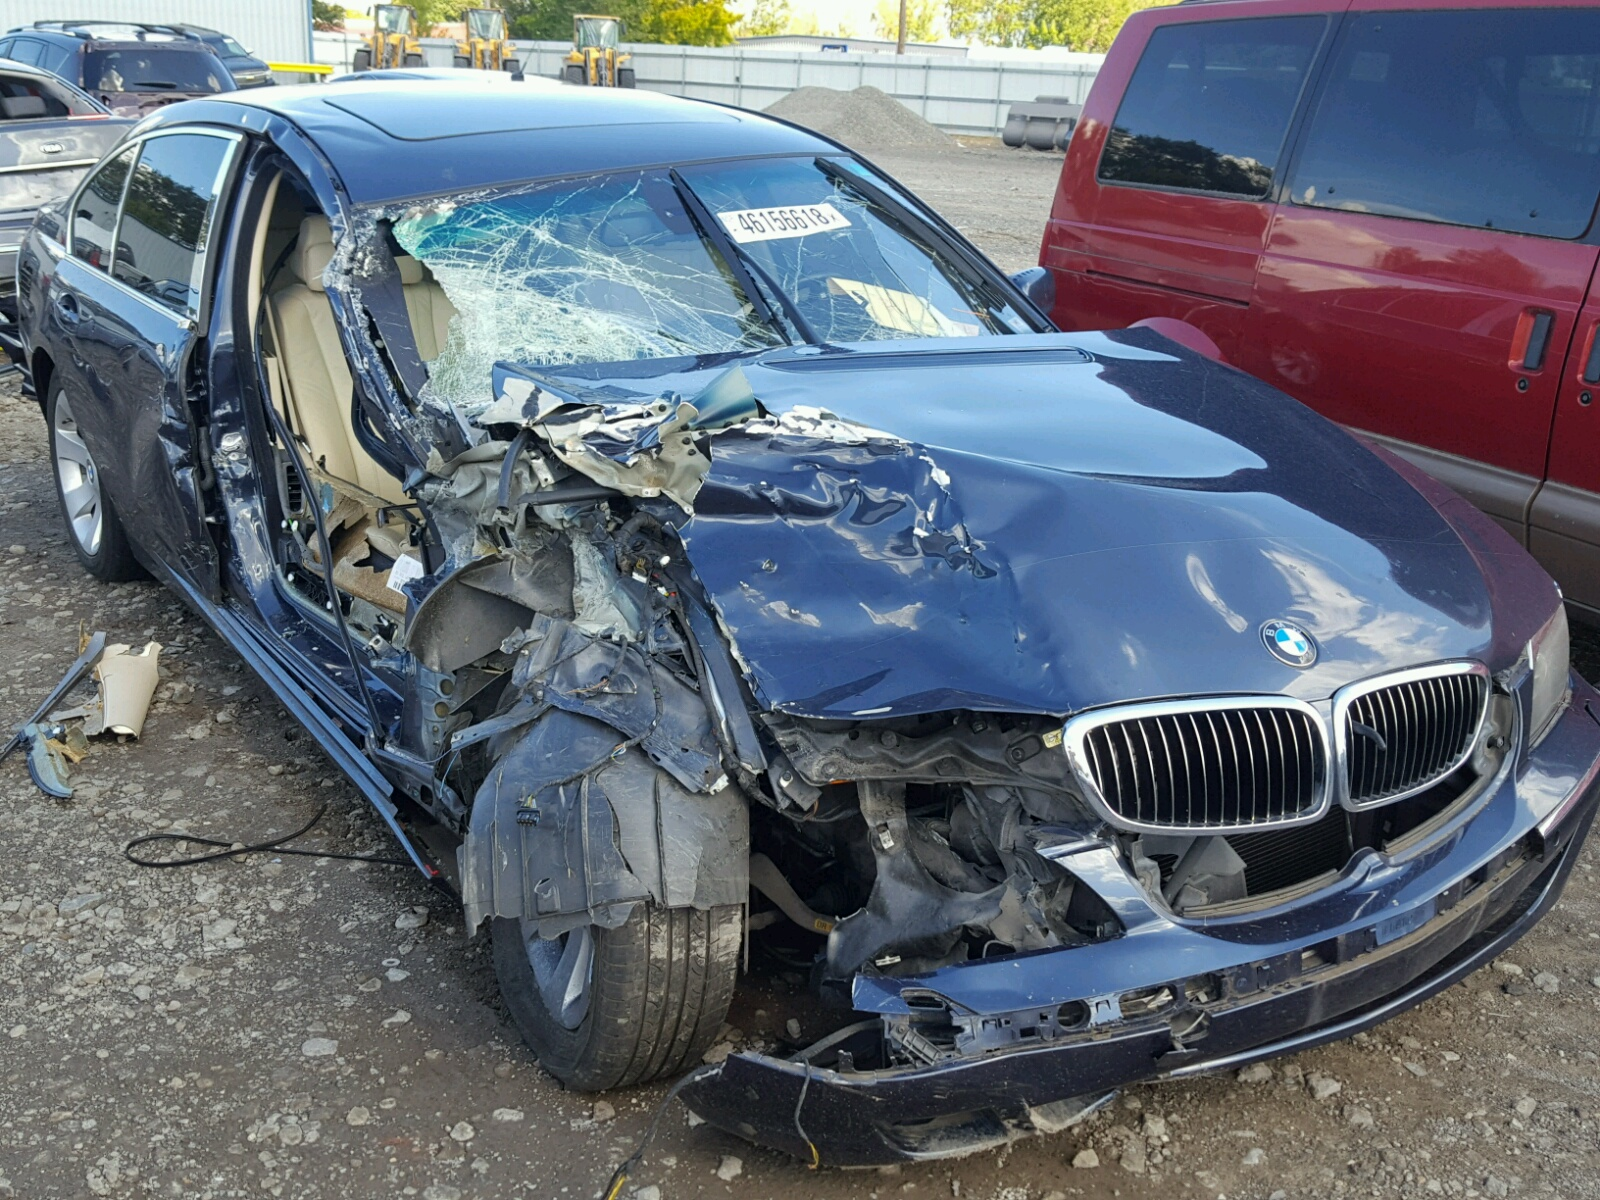 BMW Alpina B For Sale At Copart Portland OR Lot - 2007 bmw b7 alpina for sale